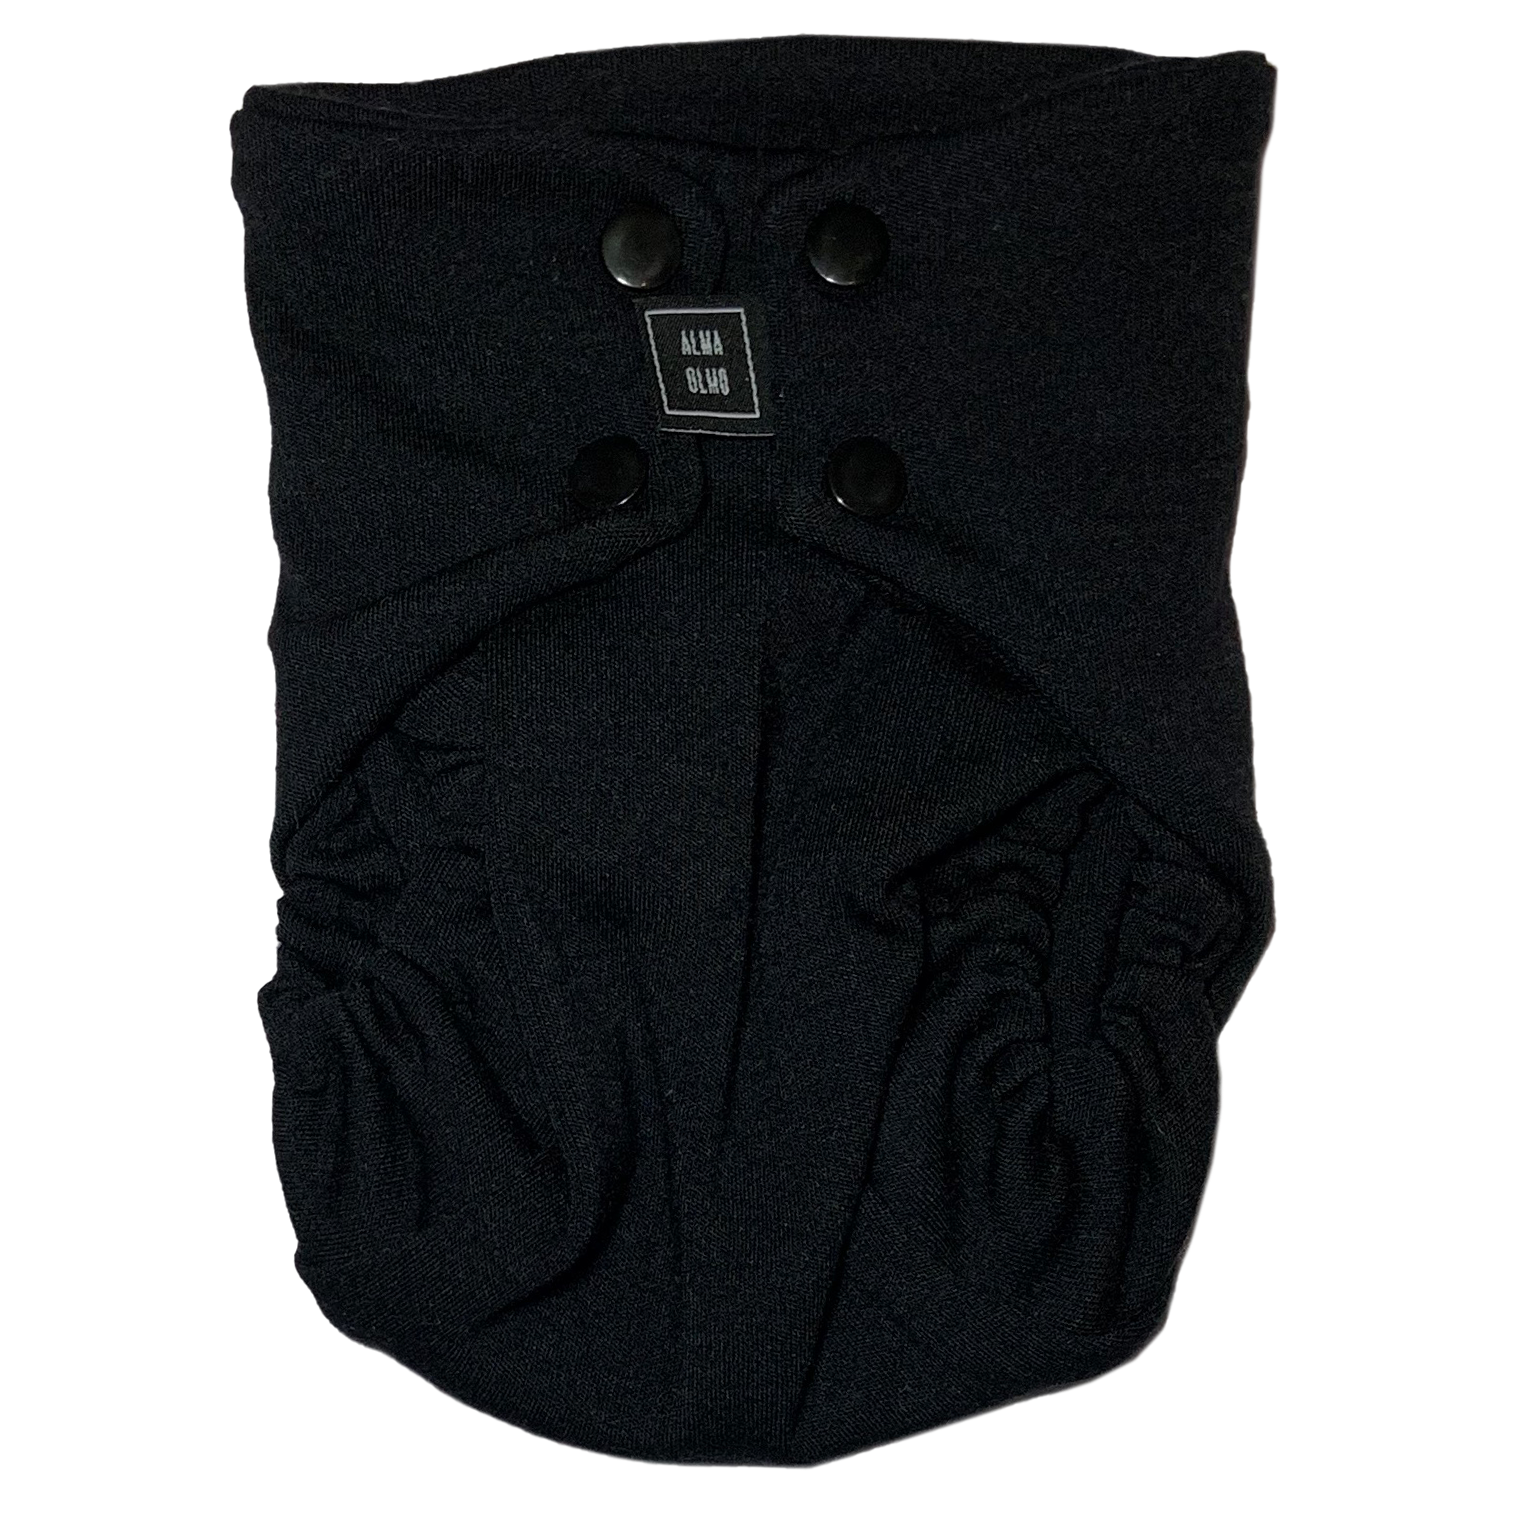 Black snap nappy. Picture taken from the front.